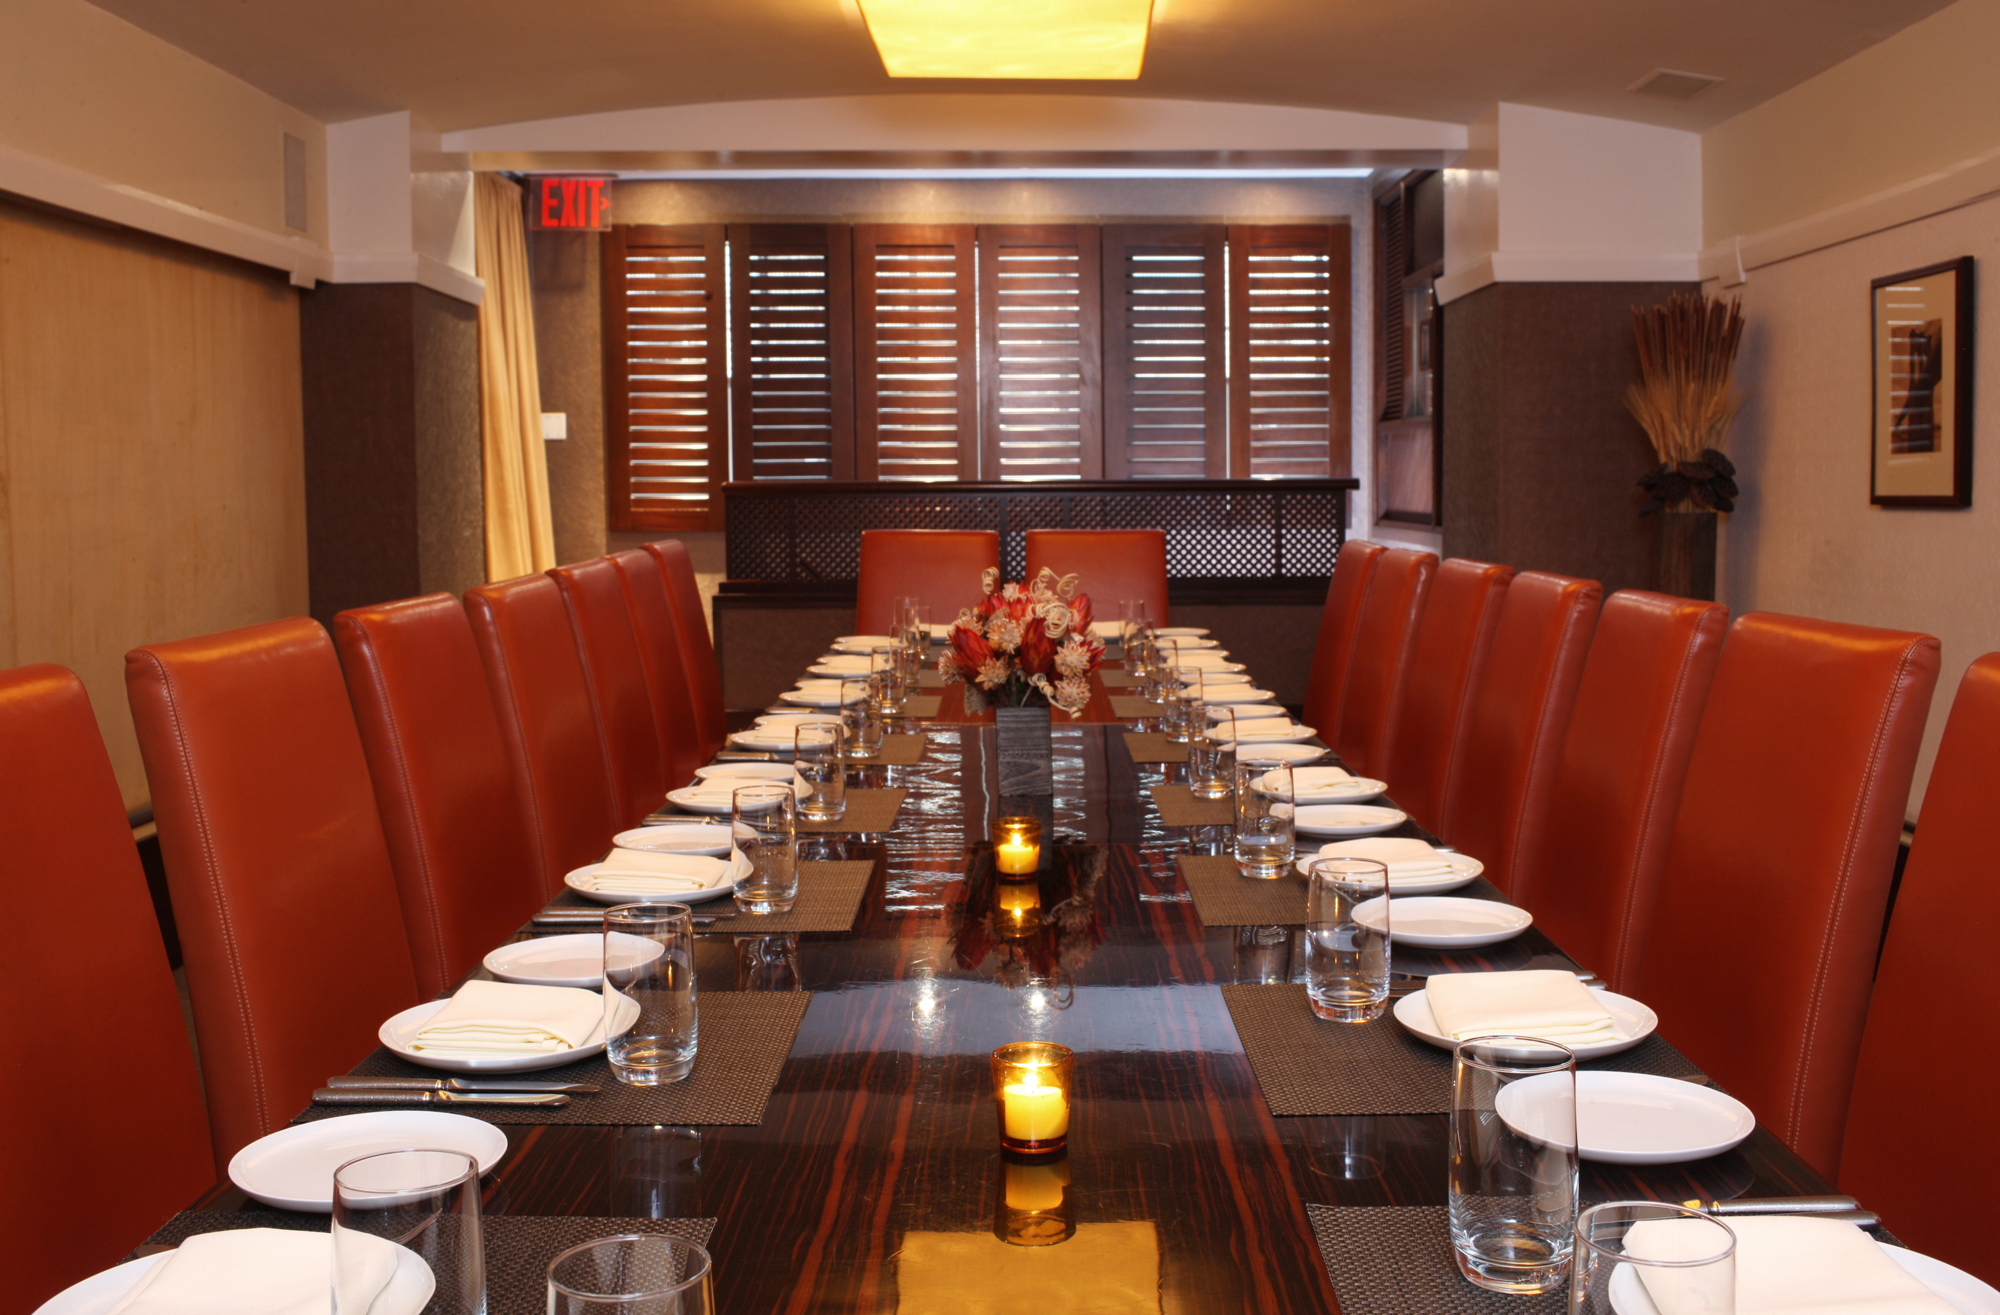 Private Dining Room event space at BLT Steak in New York City, NYC, NY/NJ Area